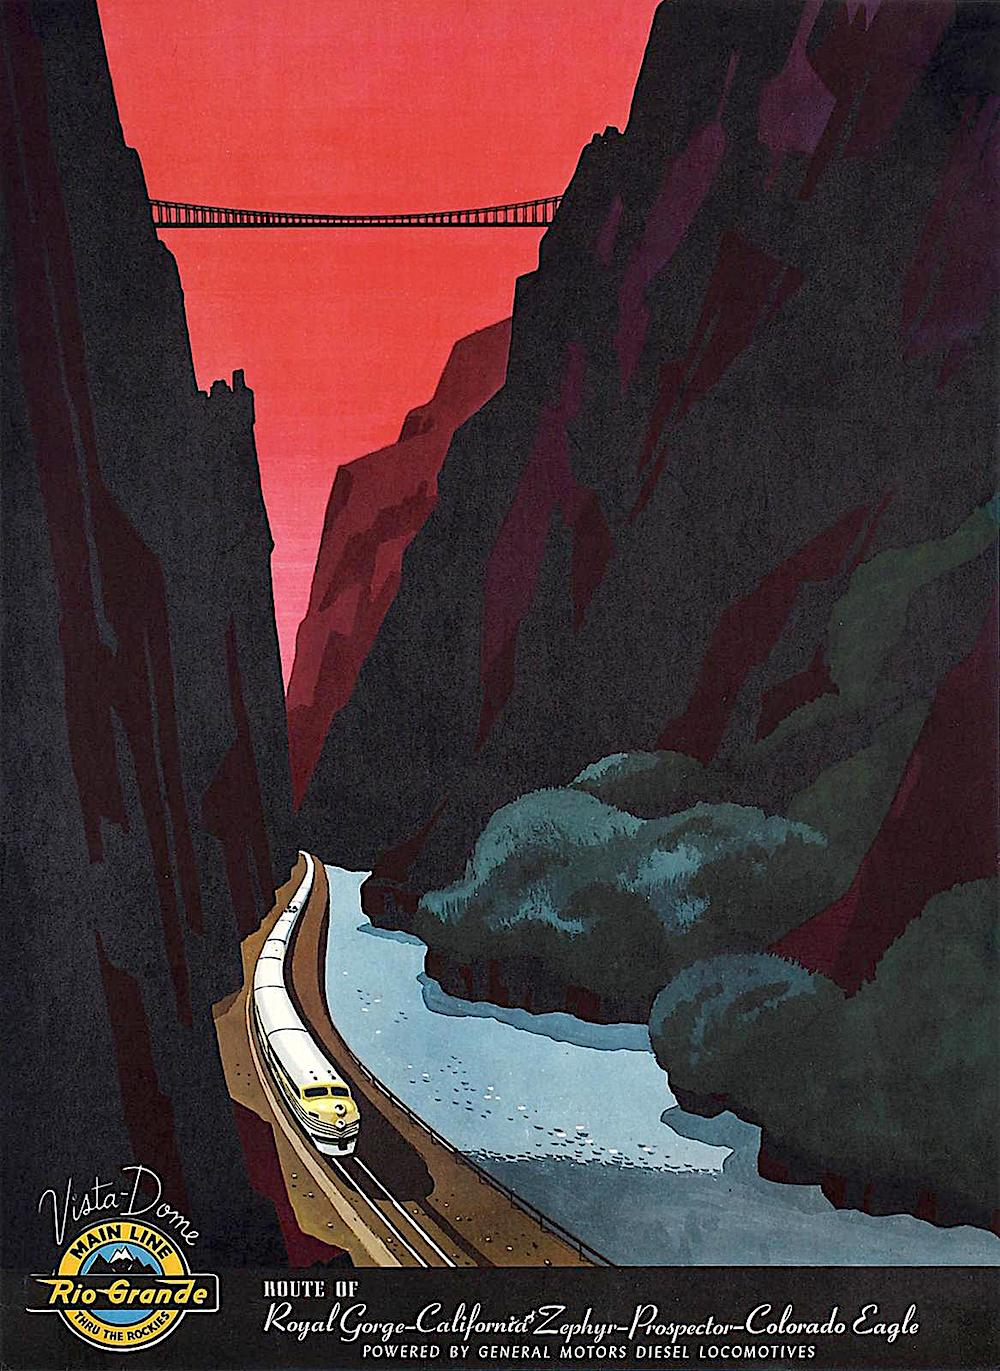 a poster by Bern Hill